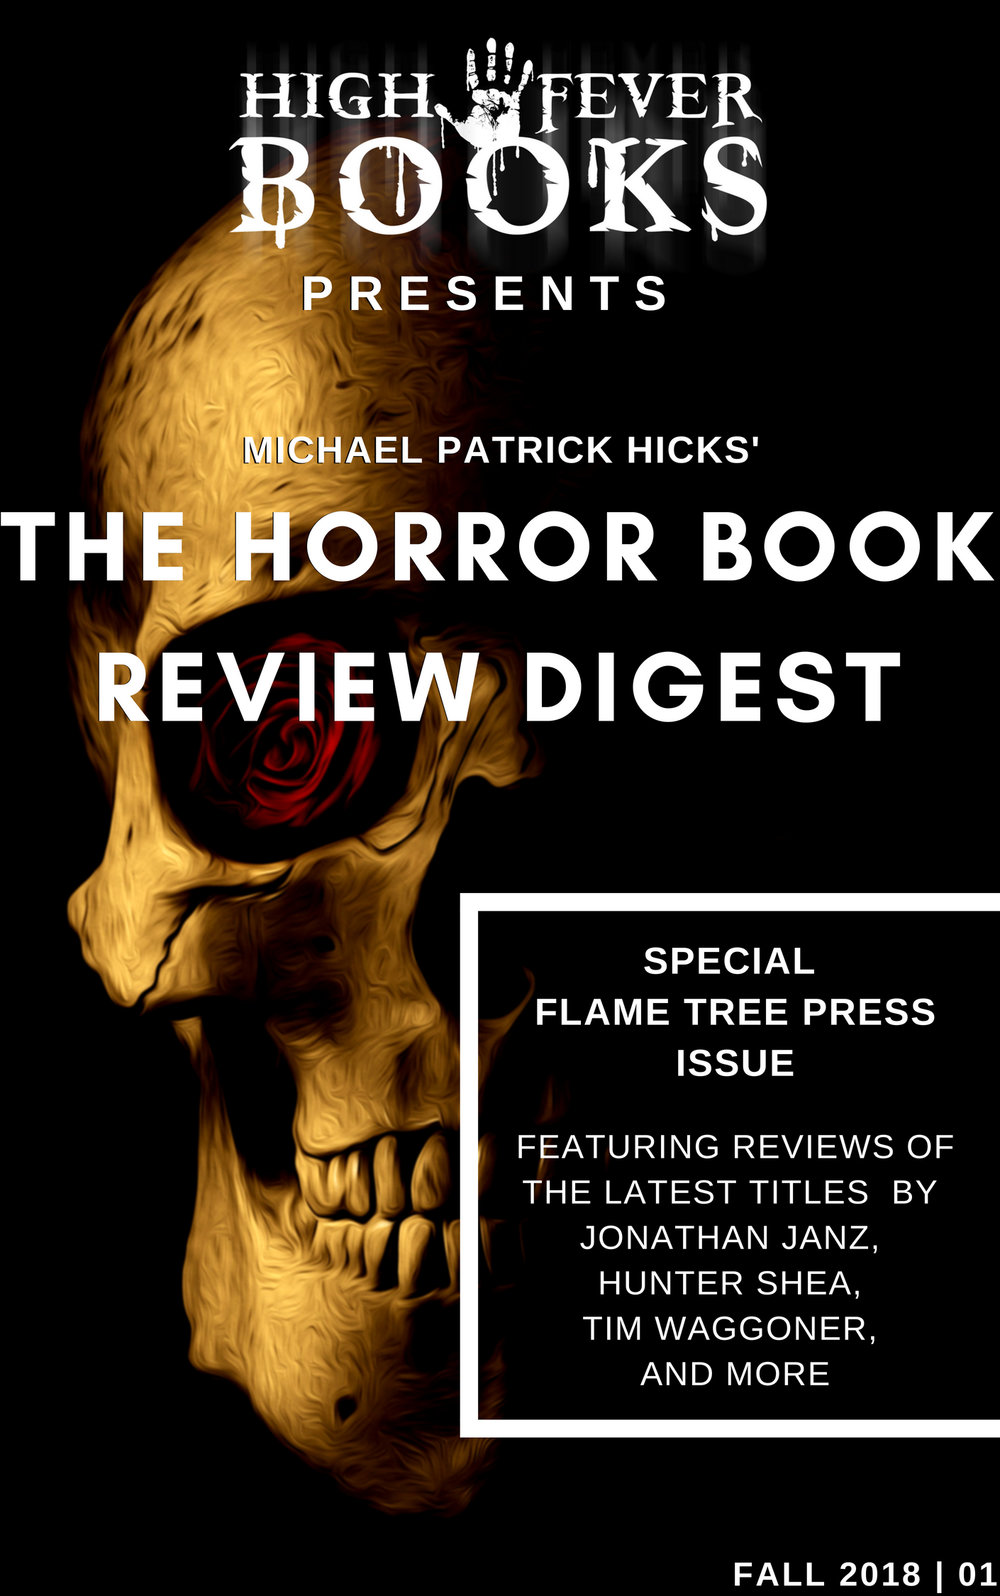 The Horror Book Review Digest Vol. 1 (1).jpg